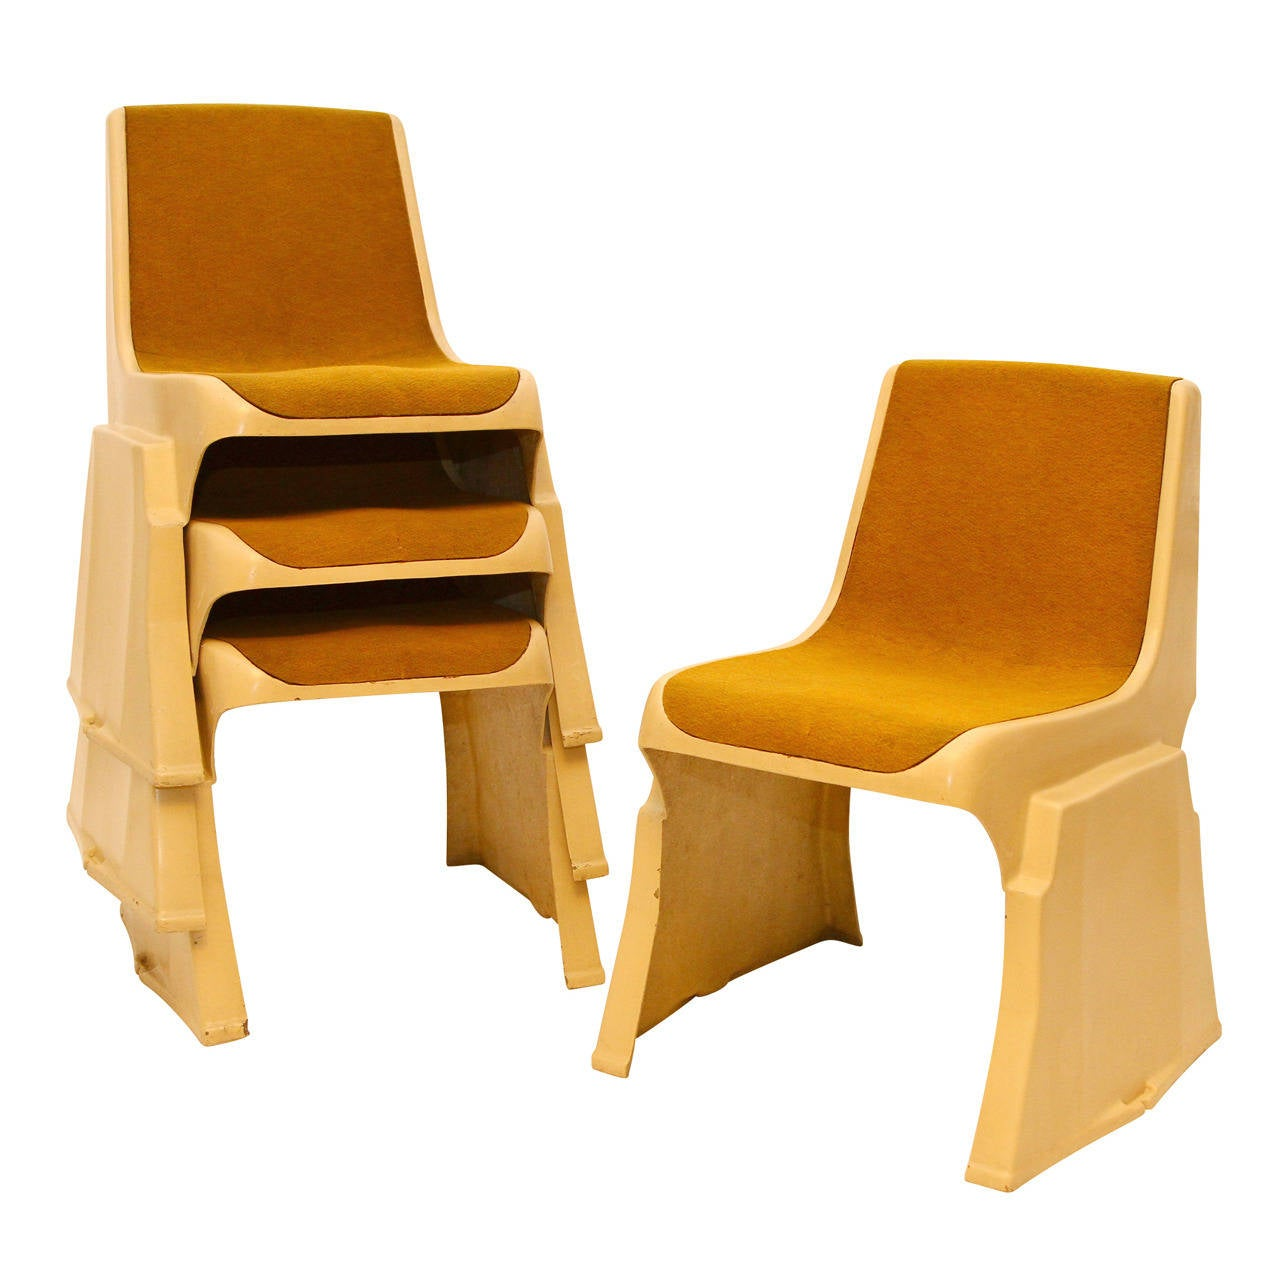 Up to 8 Very Rare Brutalist Austrian Stacking Chairs, 1970s For Sale